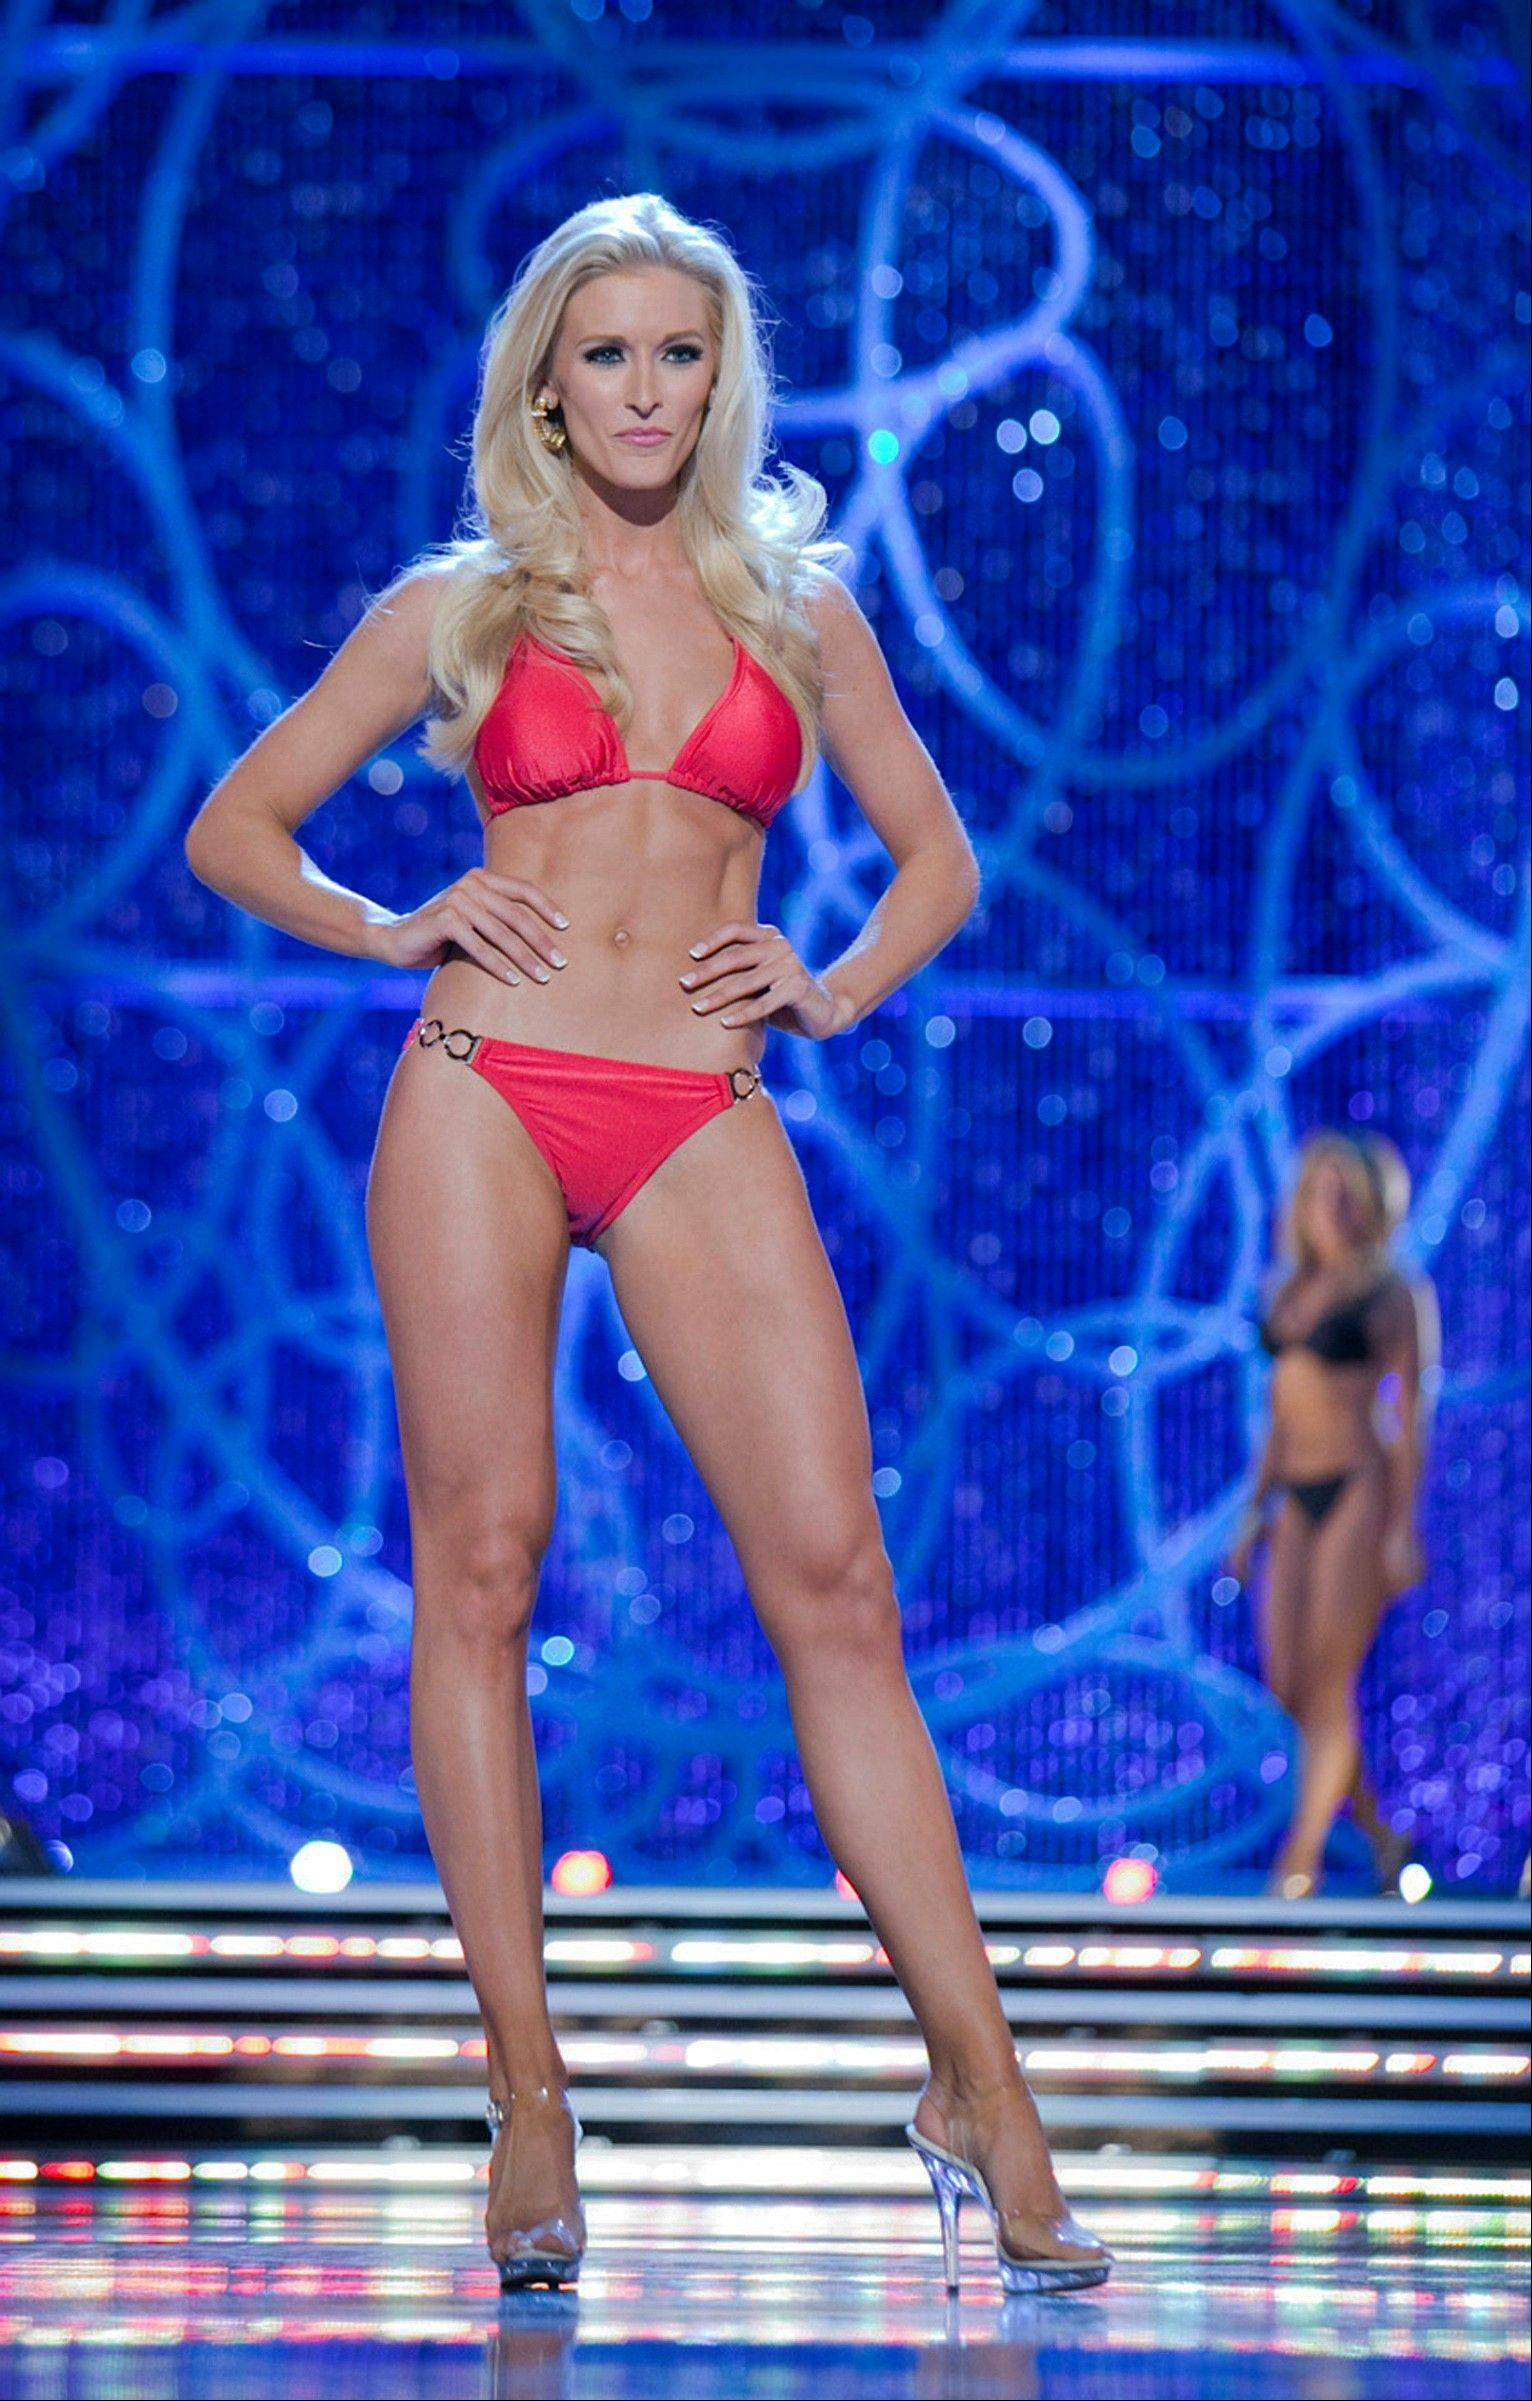 This photo courtesy Miss America Organization shows Miss DC, Allyn Rose, during the Swimsuit portion of preliminary competition at the 2013 Miss America Pageant in Las Vegas, Tuesday, Jan. 8, 2013.